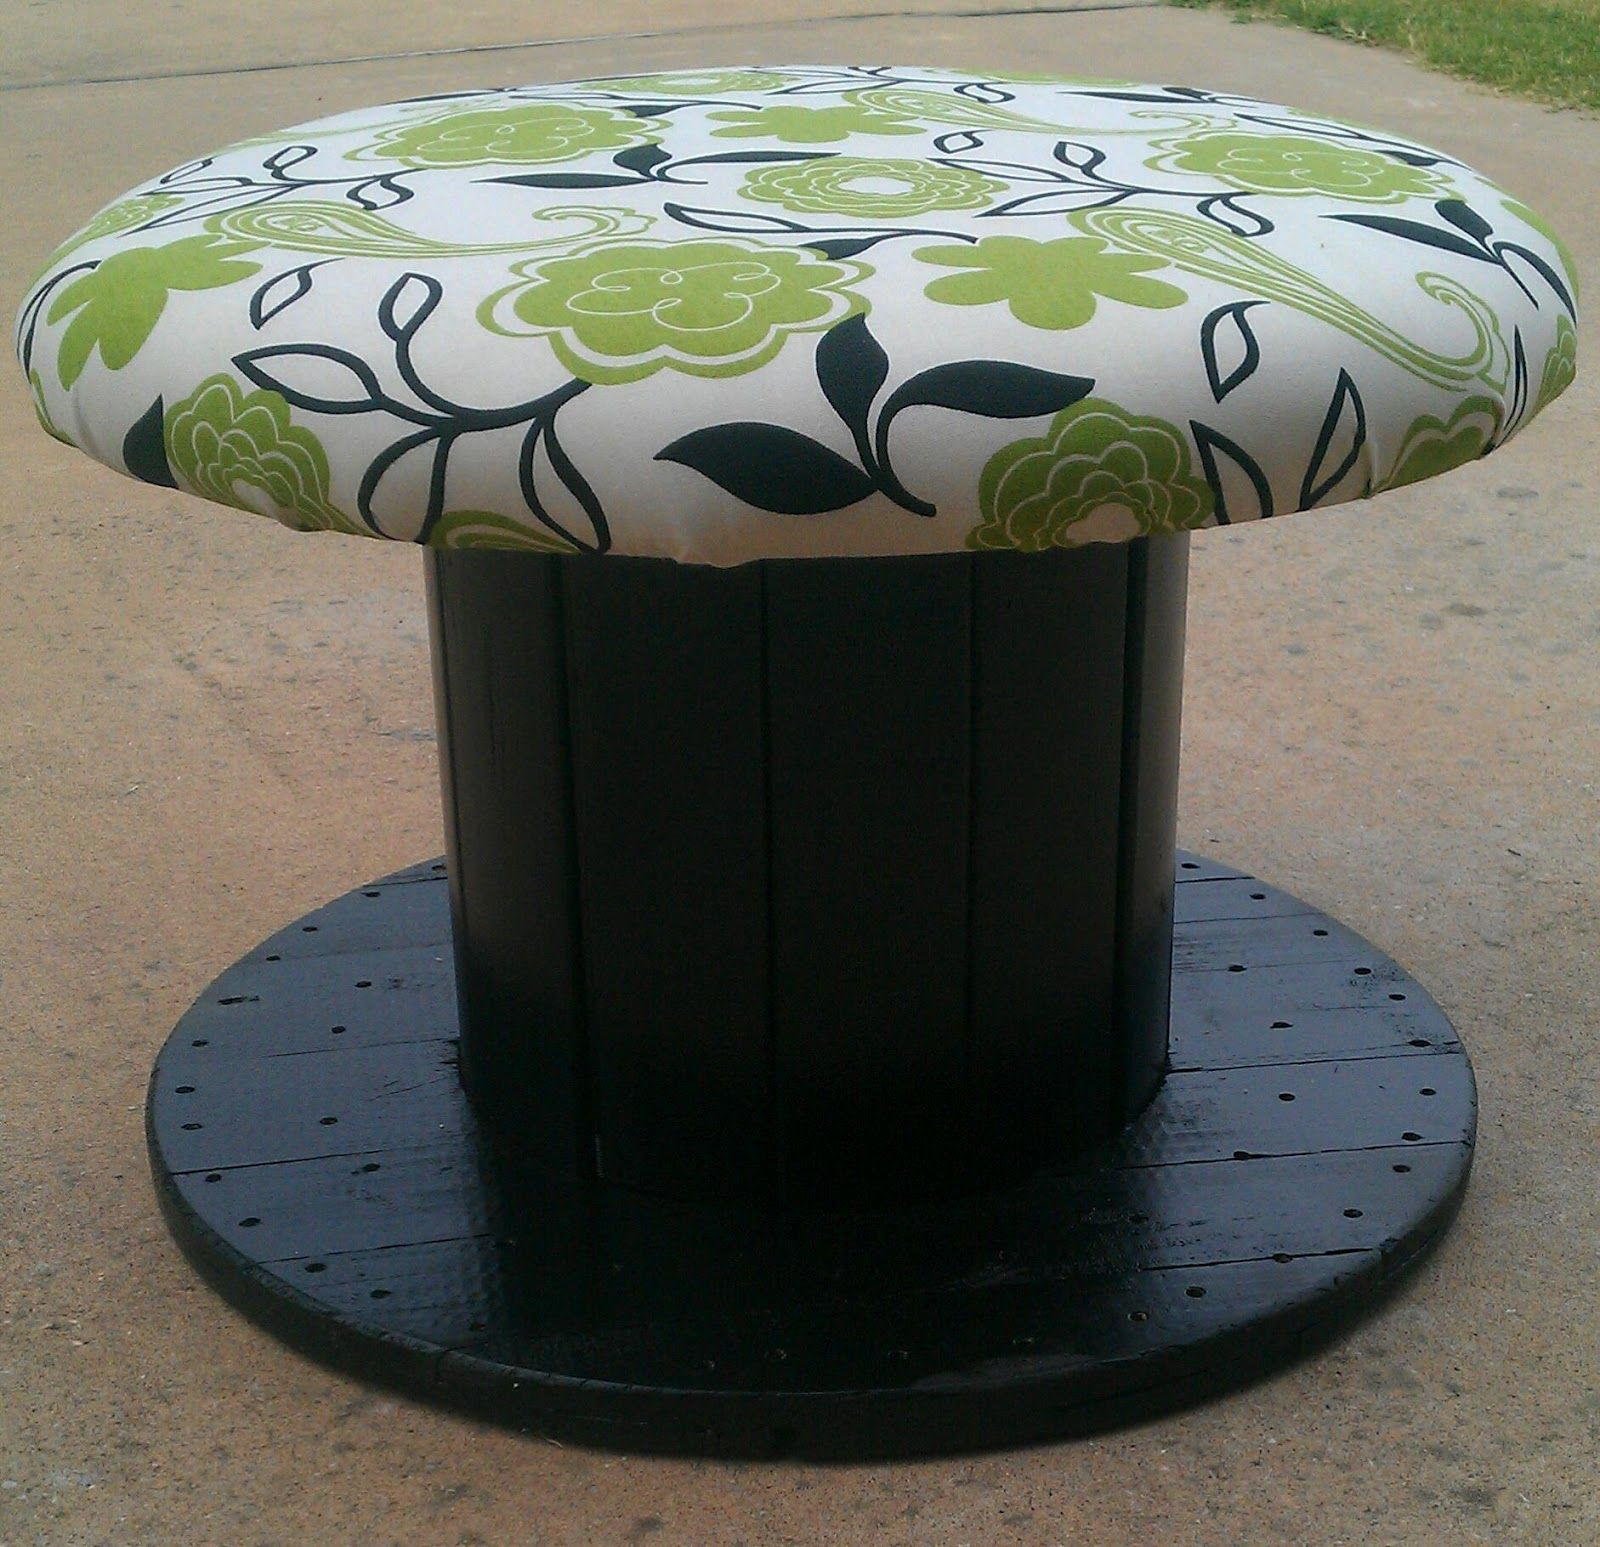 Large wooden spools for crafts - Wooden Spool Table Google Search Creative Ideas